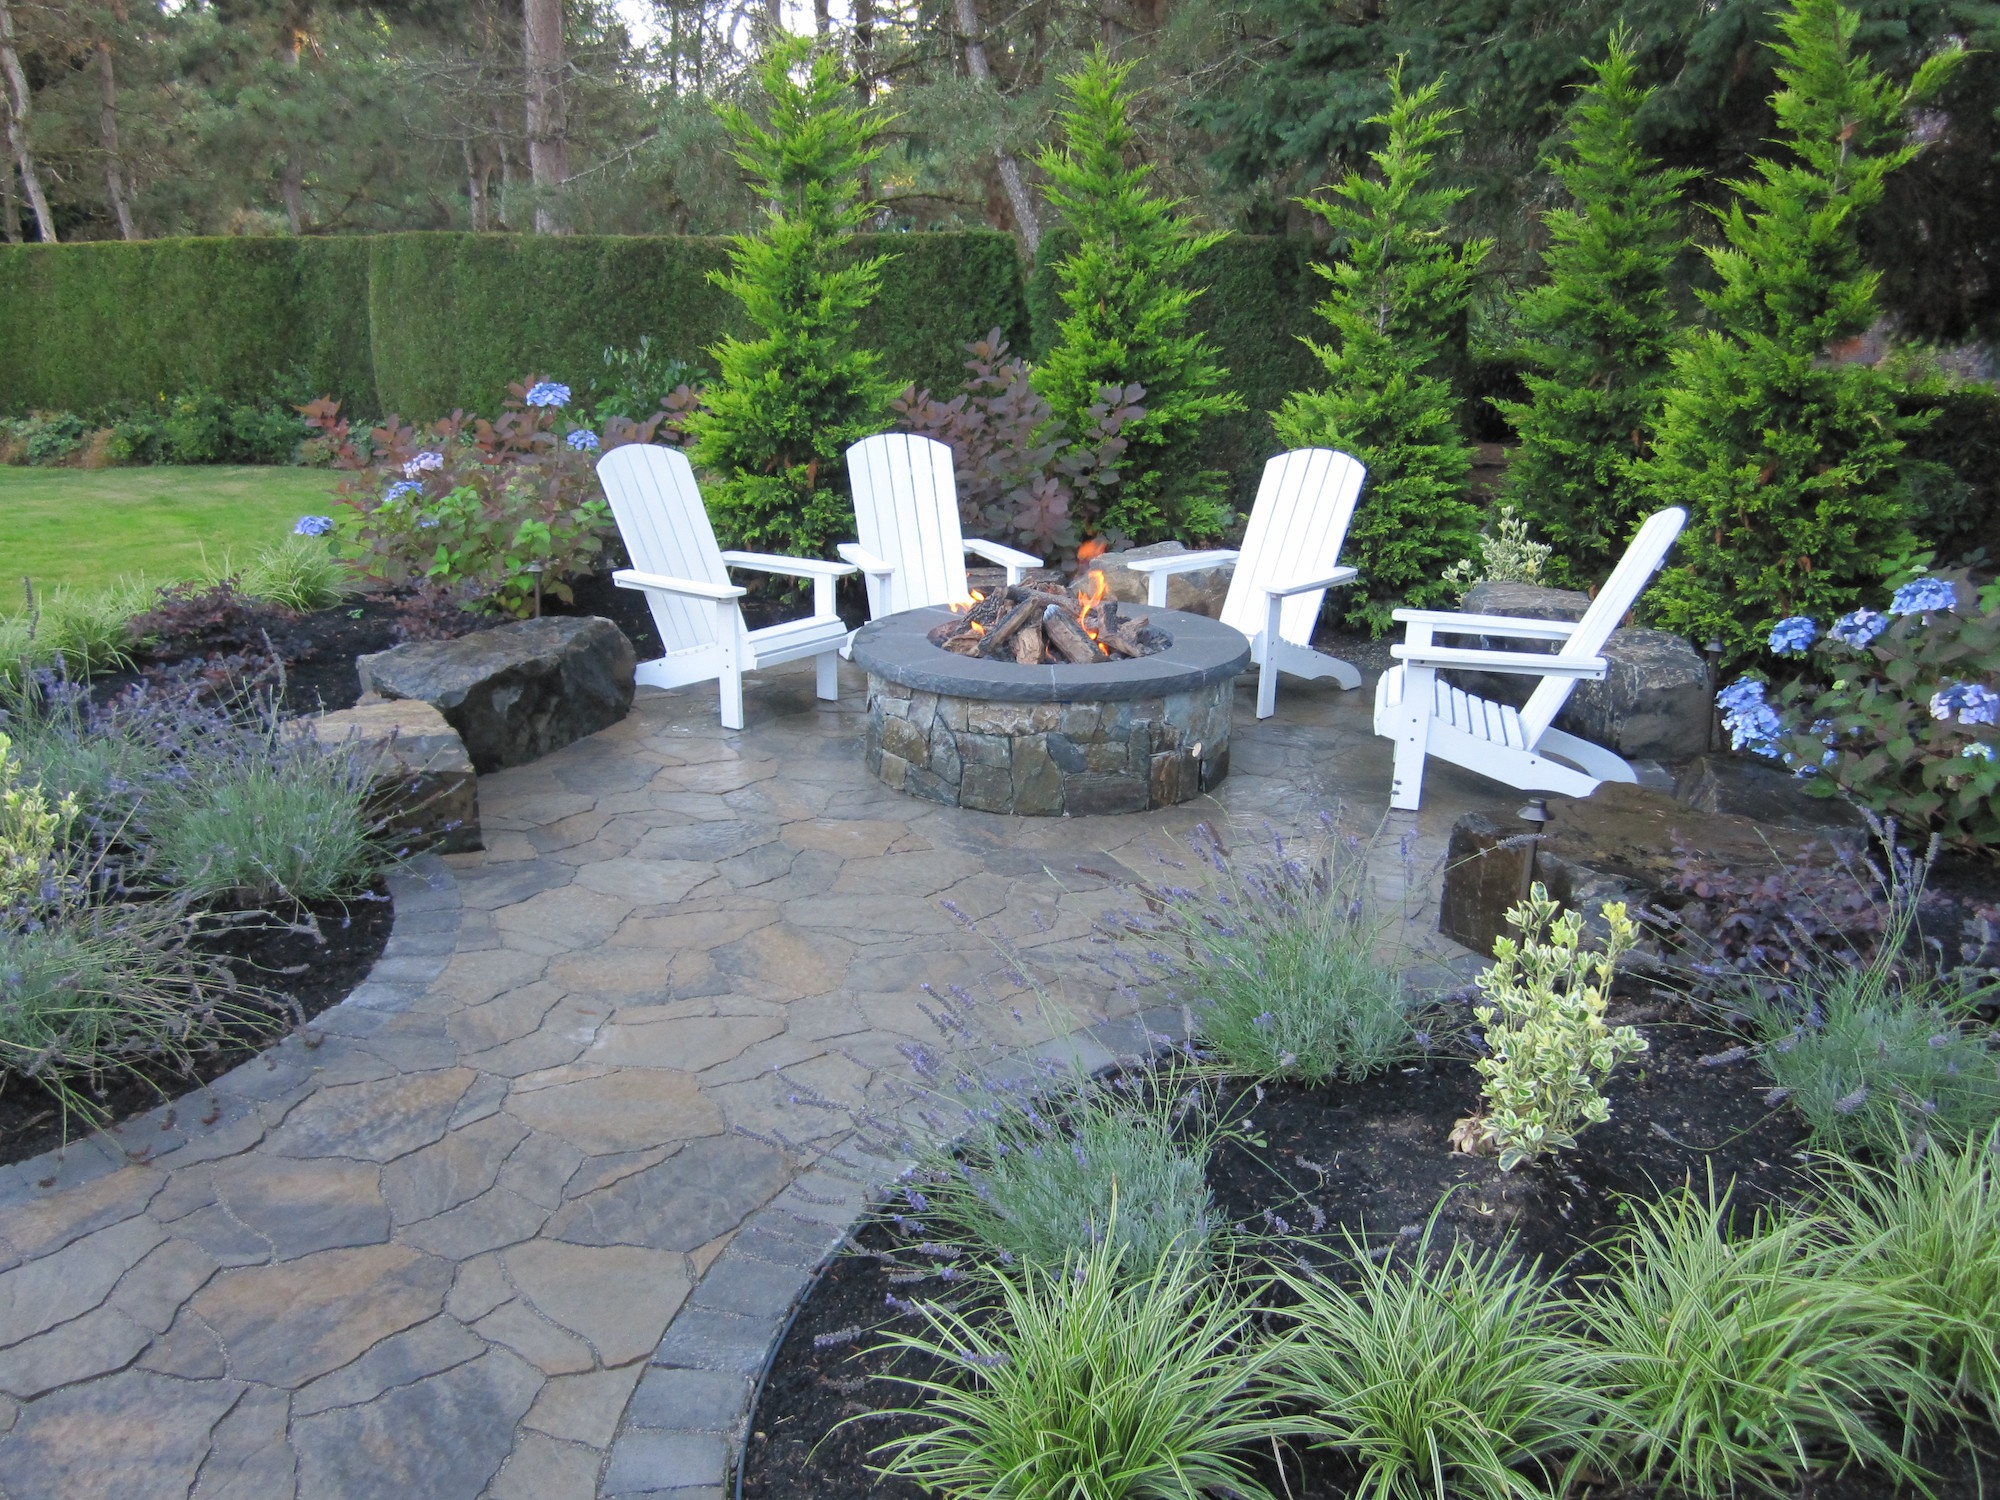 15 Fire Pit Ideas To Keep You Cozy Year Round on Garden Ideas With Fire Pit id=36850